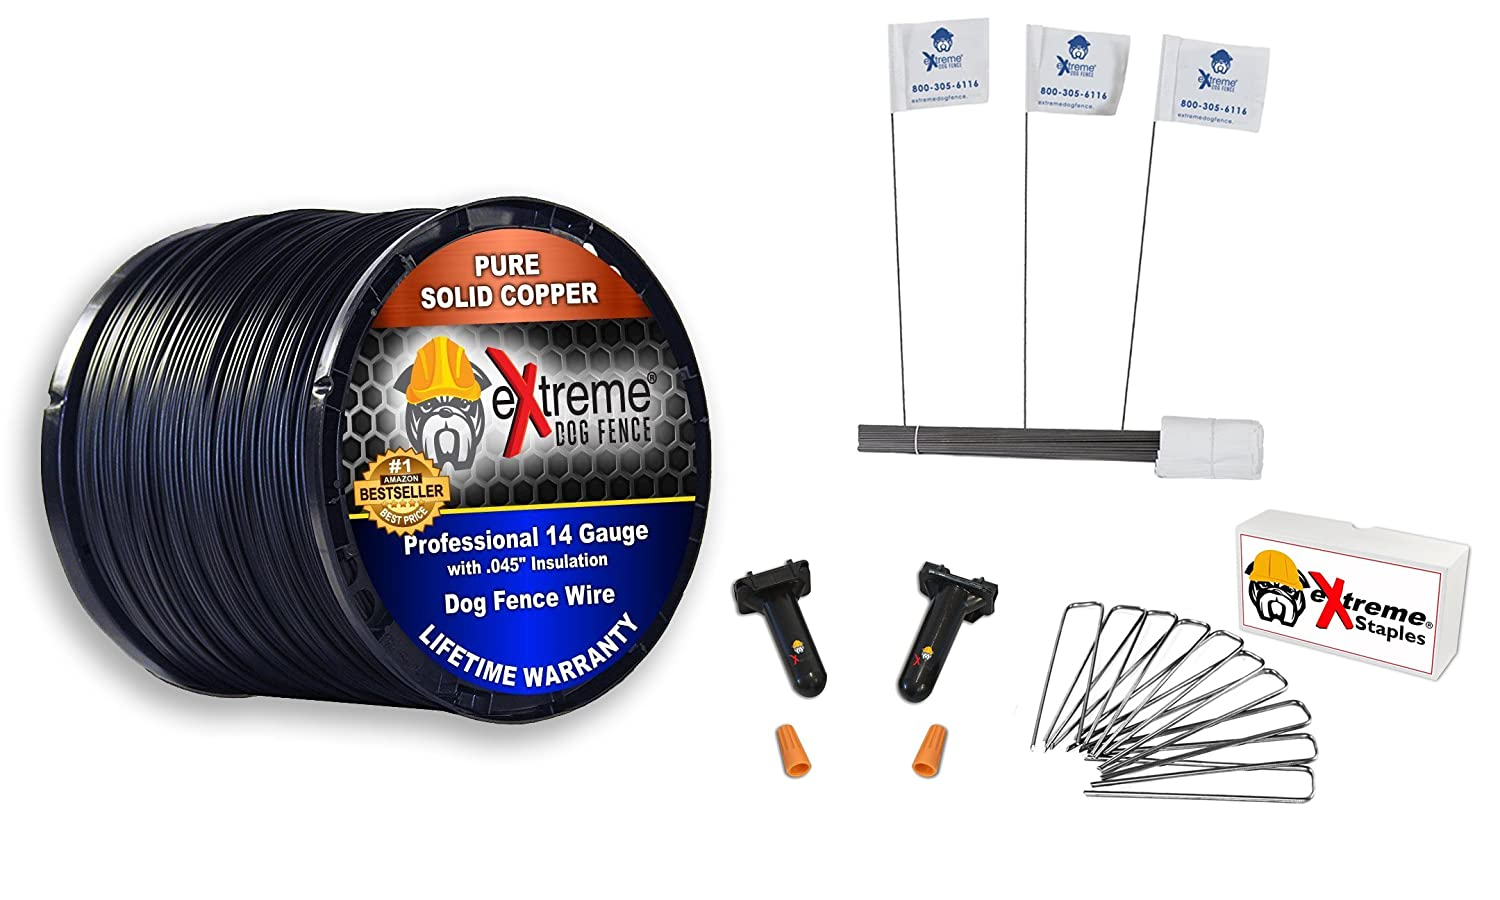 Extreme Dog Fence High Performance Boundary Wire and Boundary Wire Installation Kits for Upgrading or Relocating Any Brand of Underground Electric Pet Fence System